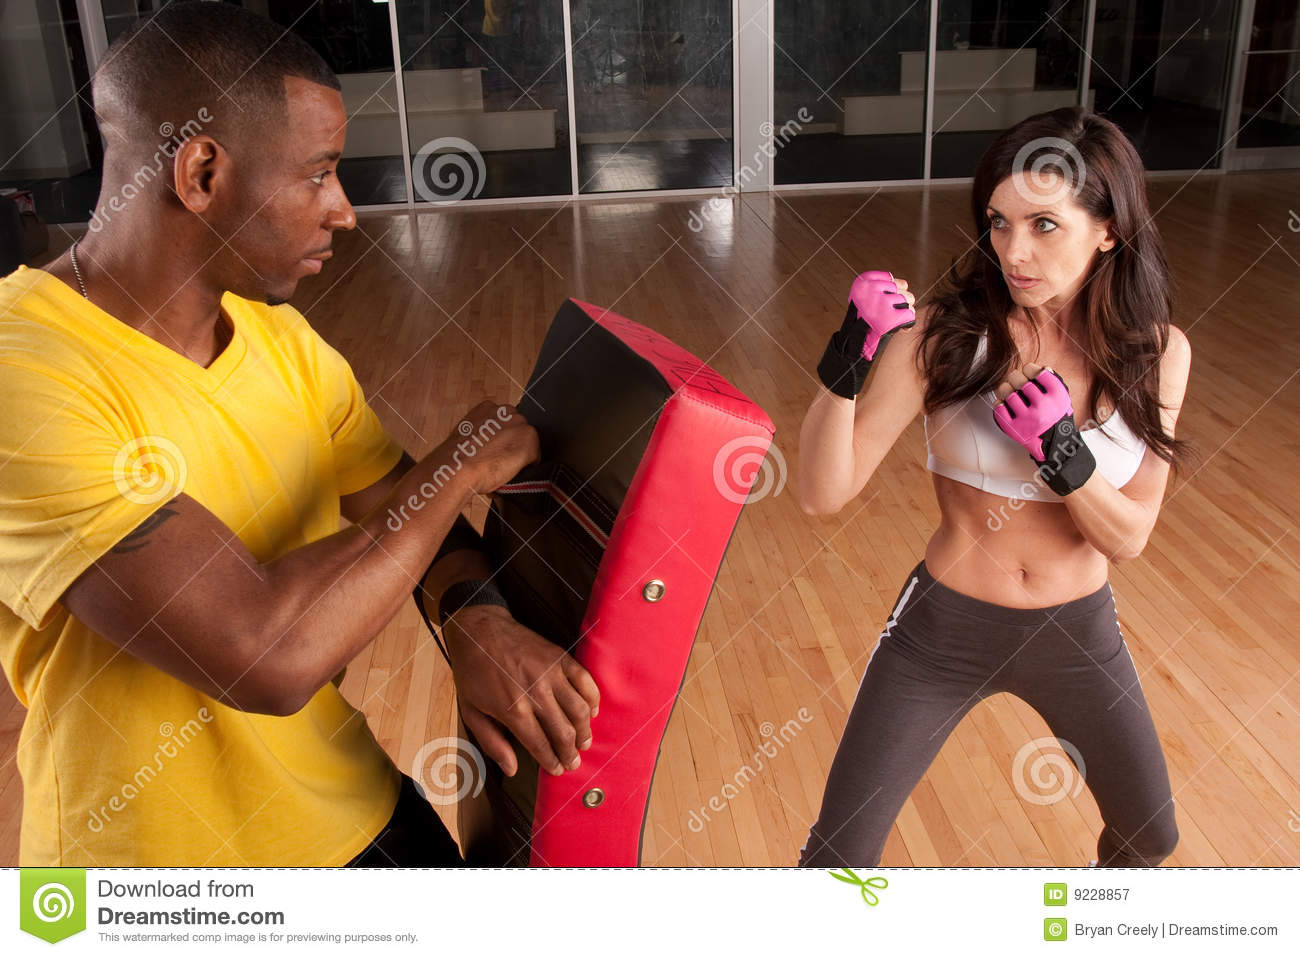 Fitness Kickboxing Stock Photos, Images, & Pictures - 6,401 Images